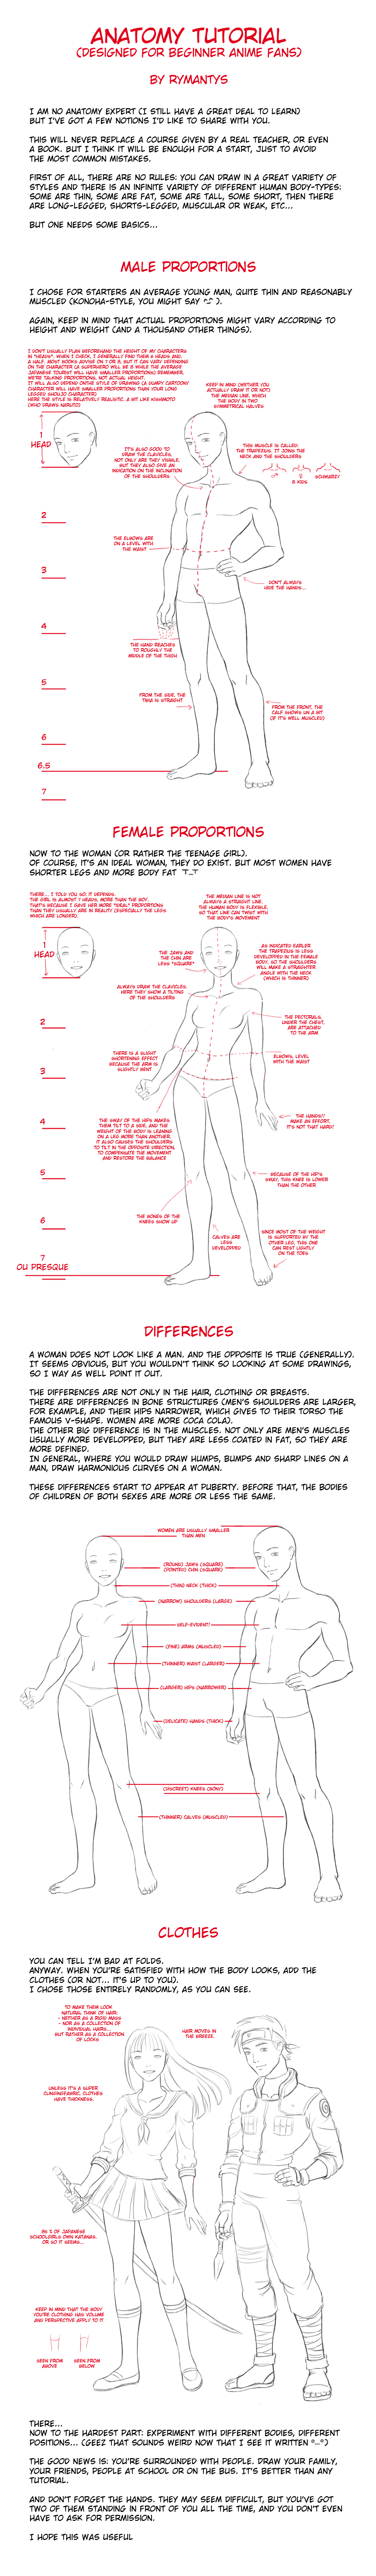 Anatomy tutorial for beginners by RyMantys on DeviantArt